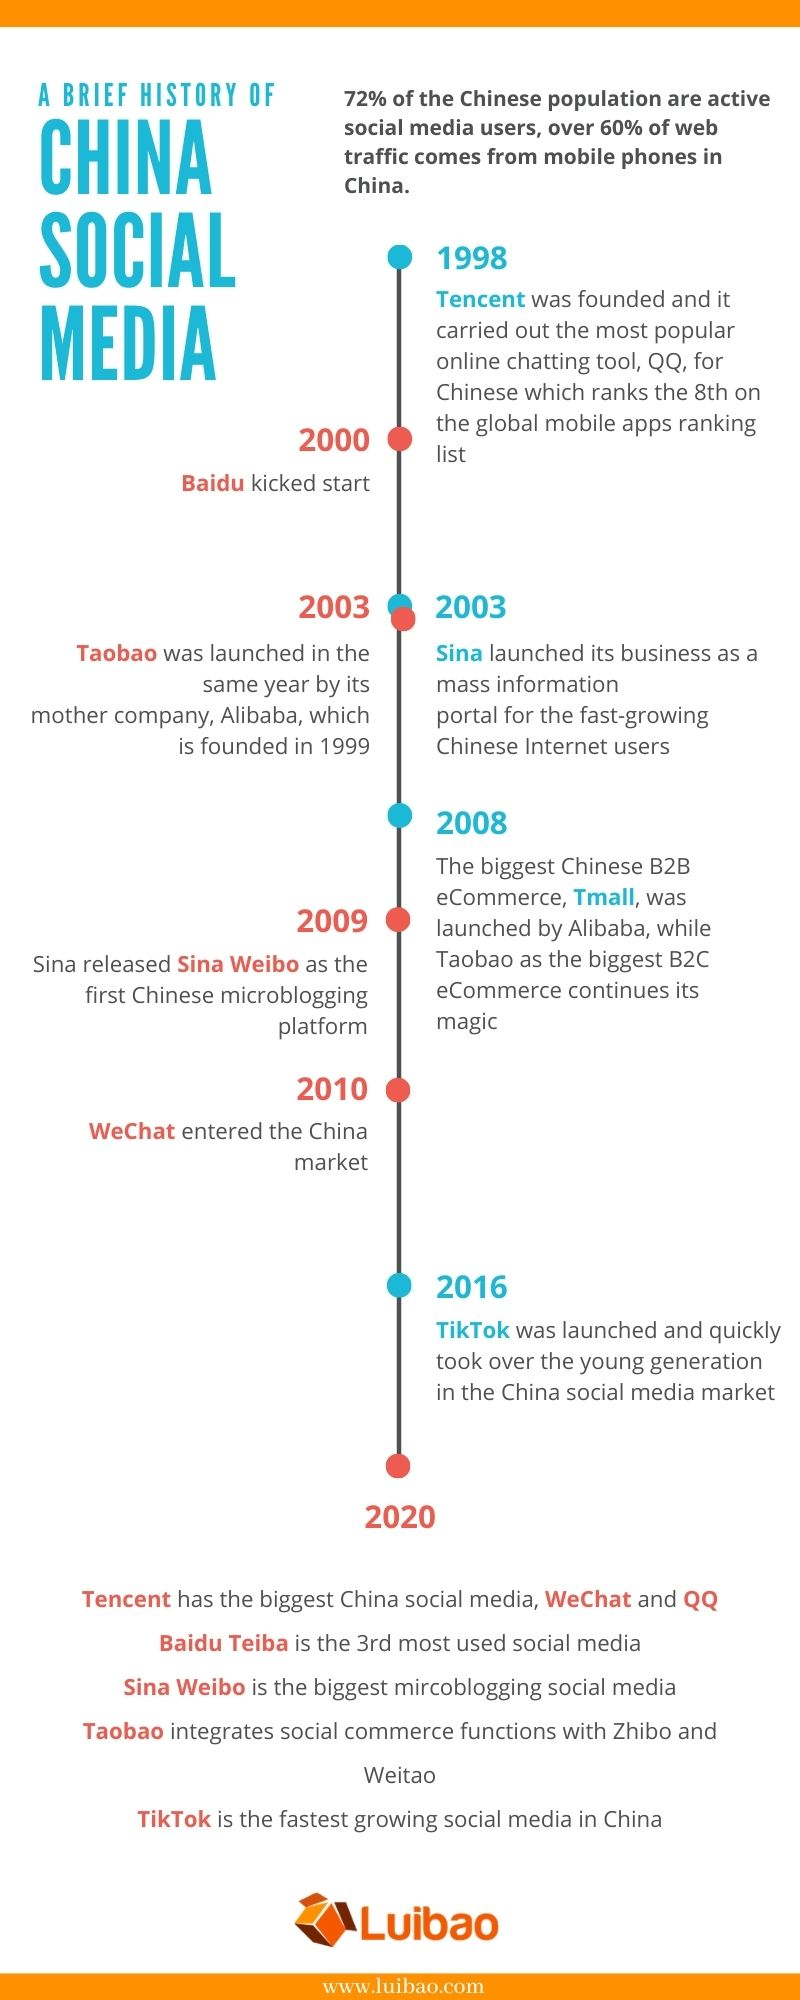 a short brief of china social media and e-commerce development in the past 20 years